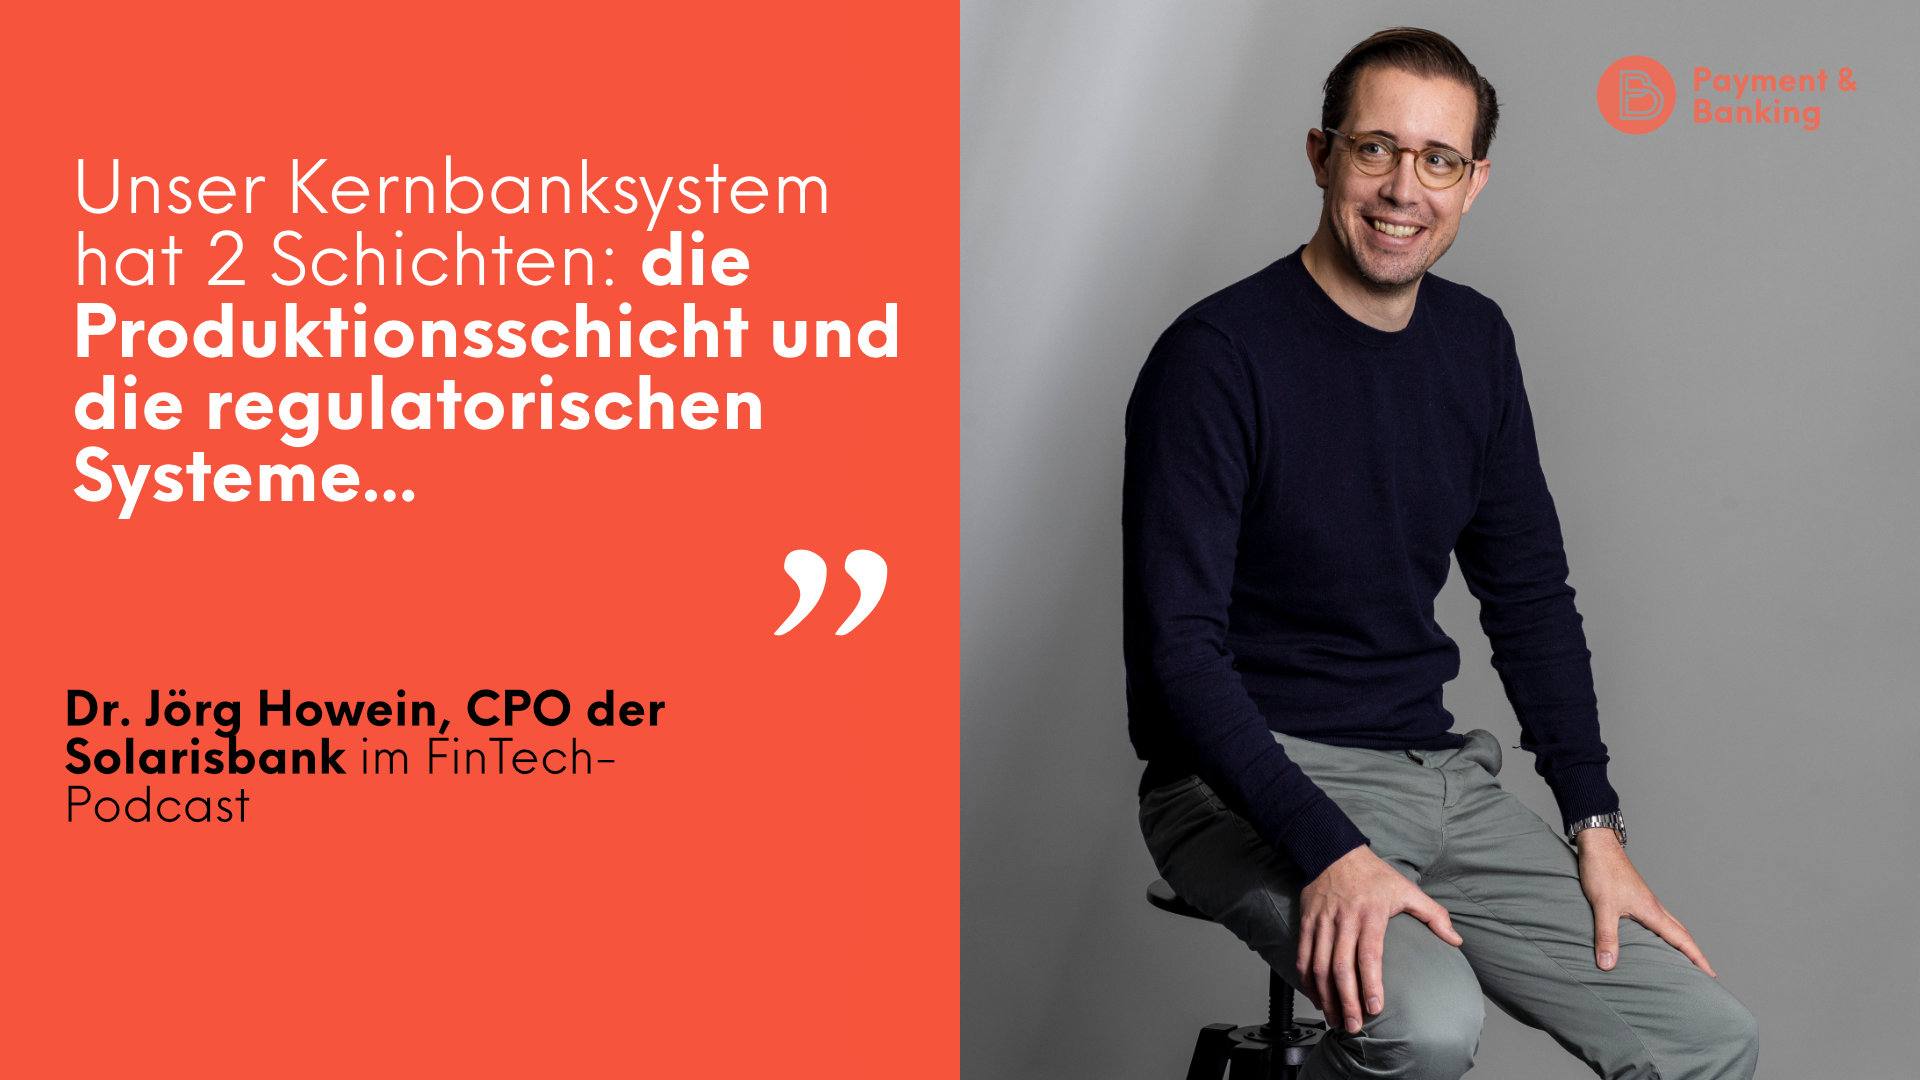 Dr. Jörg Howein, CPO der Solarisbank im Payment and Banking Fintech-Podcast